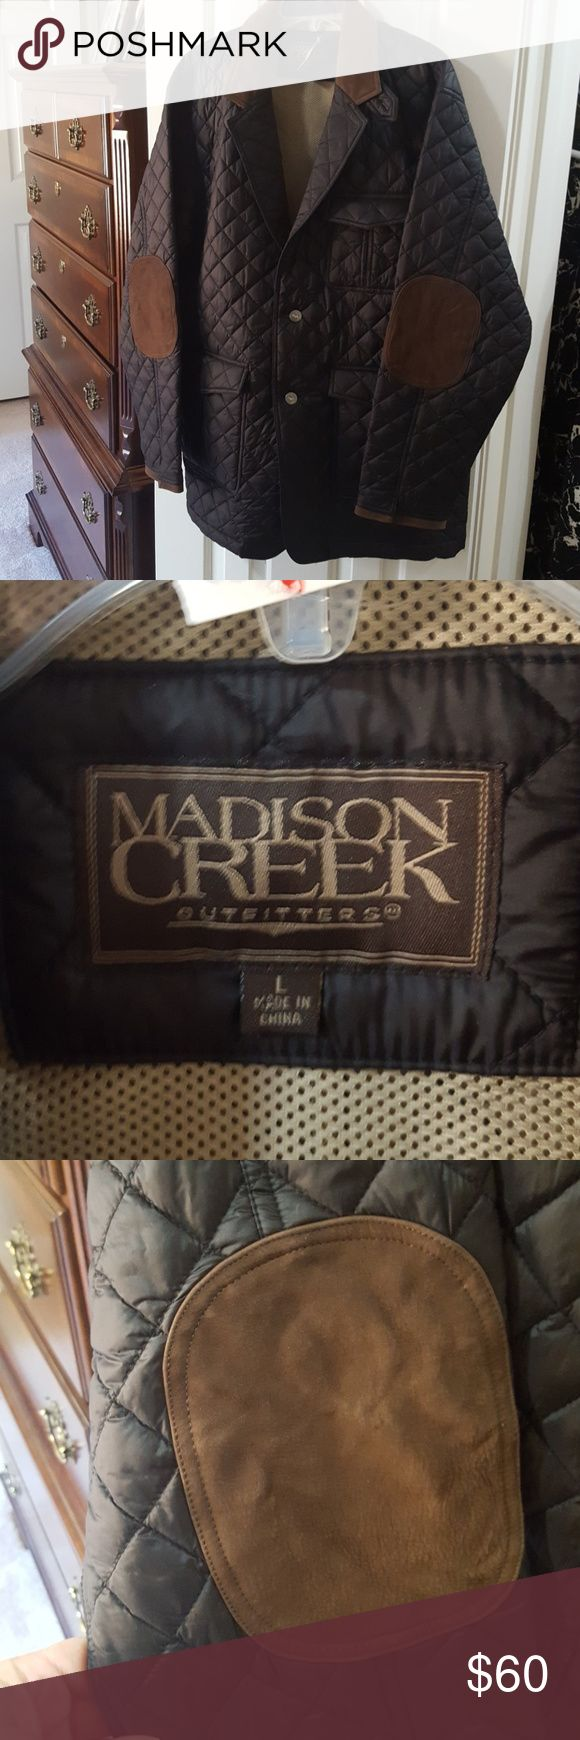 Nwt Madison Creek hunting coat Large Madison Creek Outfitters packable down sport coat hunting coat has suede elbow patches and collar black packable down with two button closure no flaws smoke-free pet-free home excellent condition bought for my son for Sporting Clays however he didn't care for it inside has one zippable pocket 2 gun pockets and a pocket that velcros outside has two large button pockets and then hand pockets and one breast pocket purchase from Mast General Store madison…